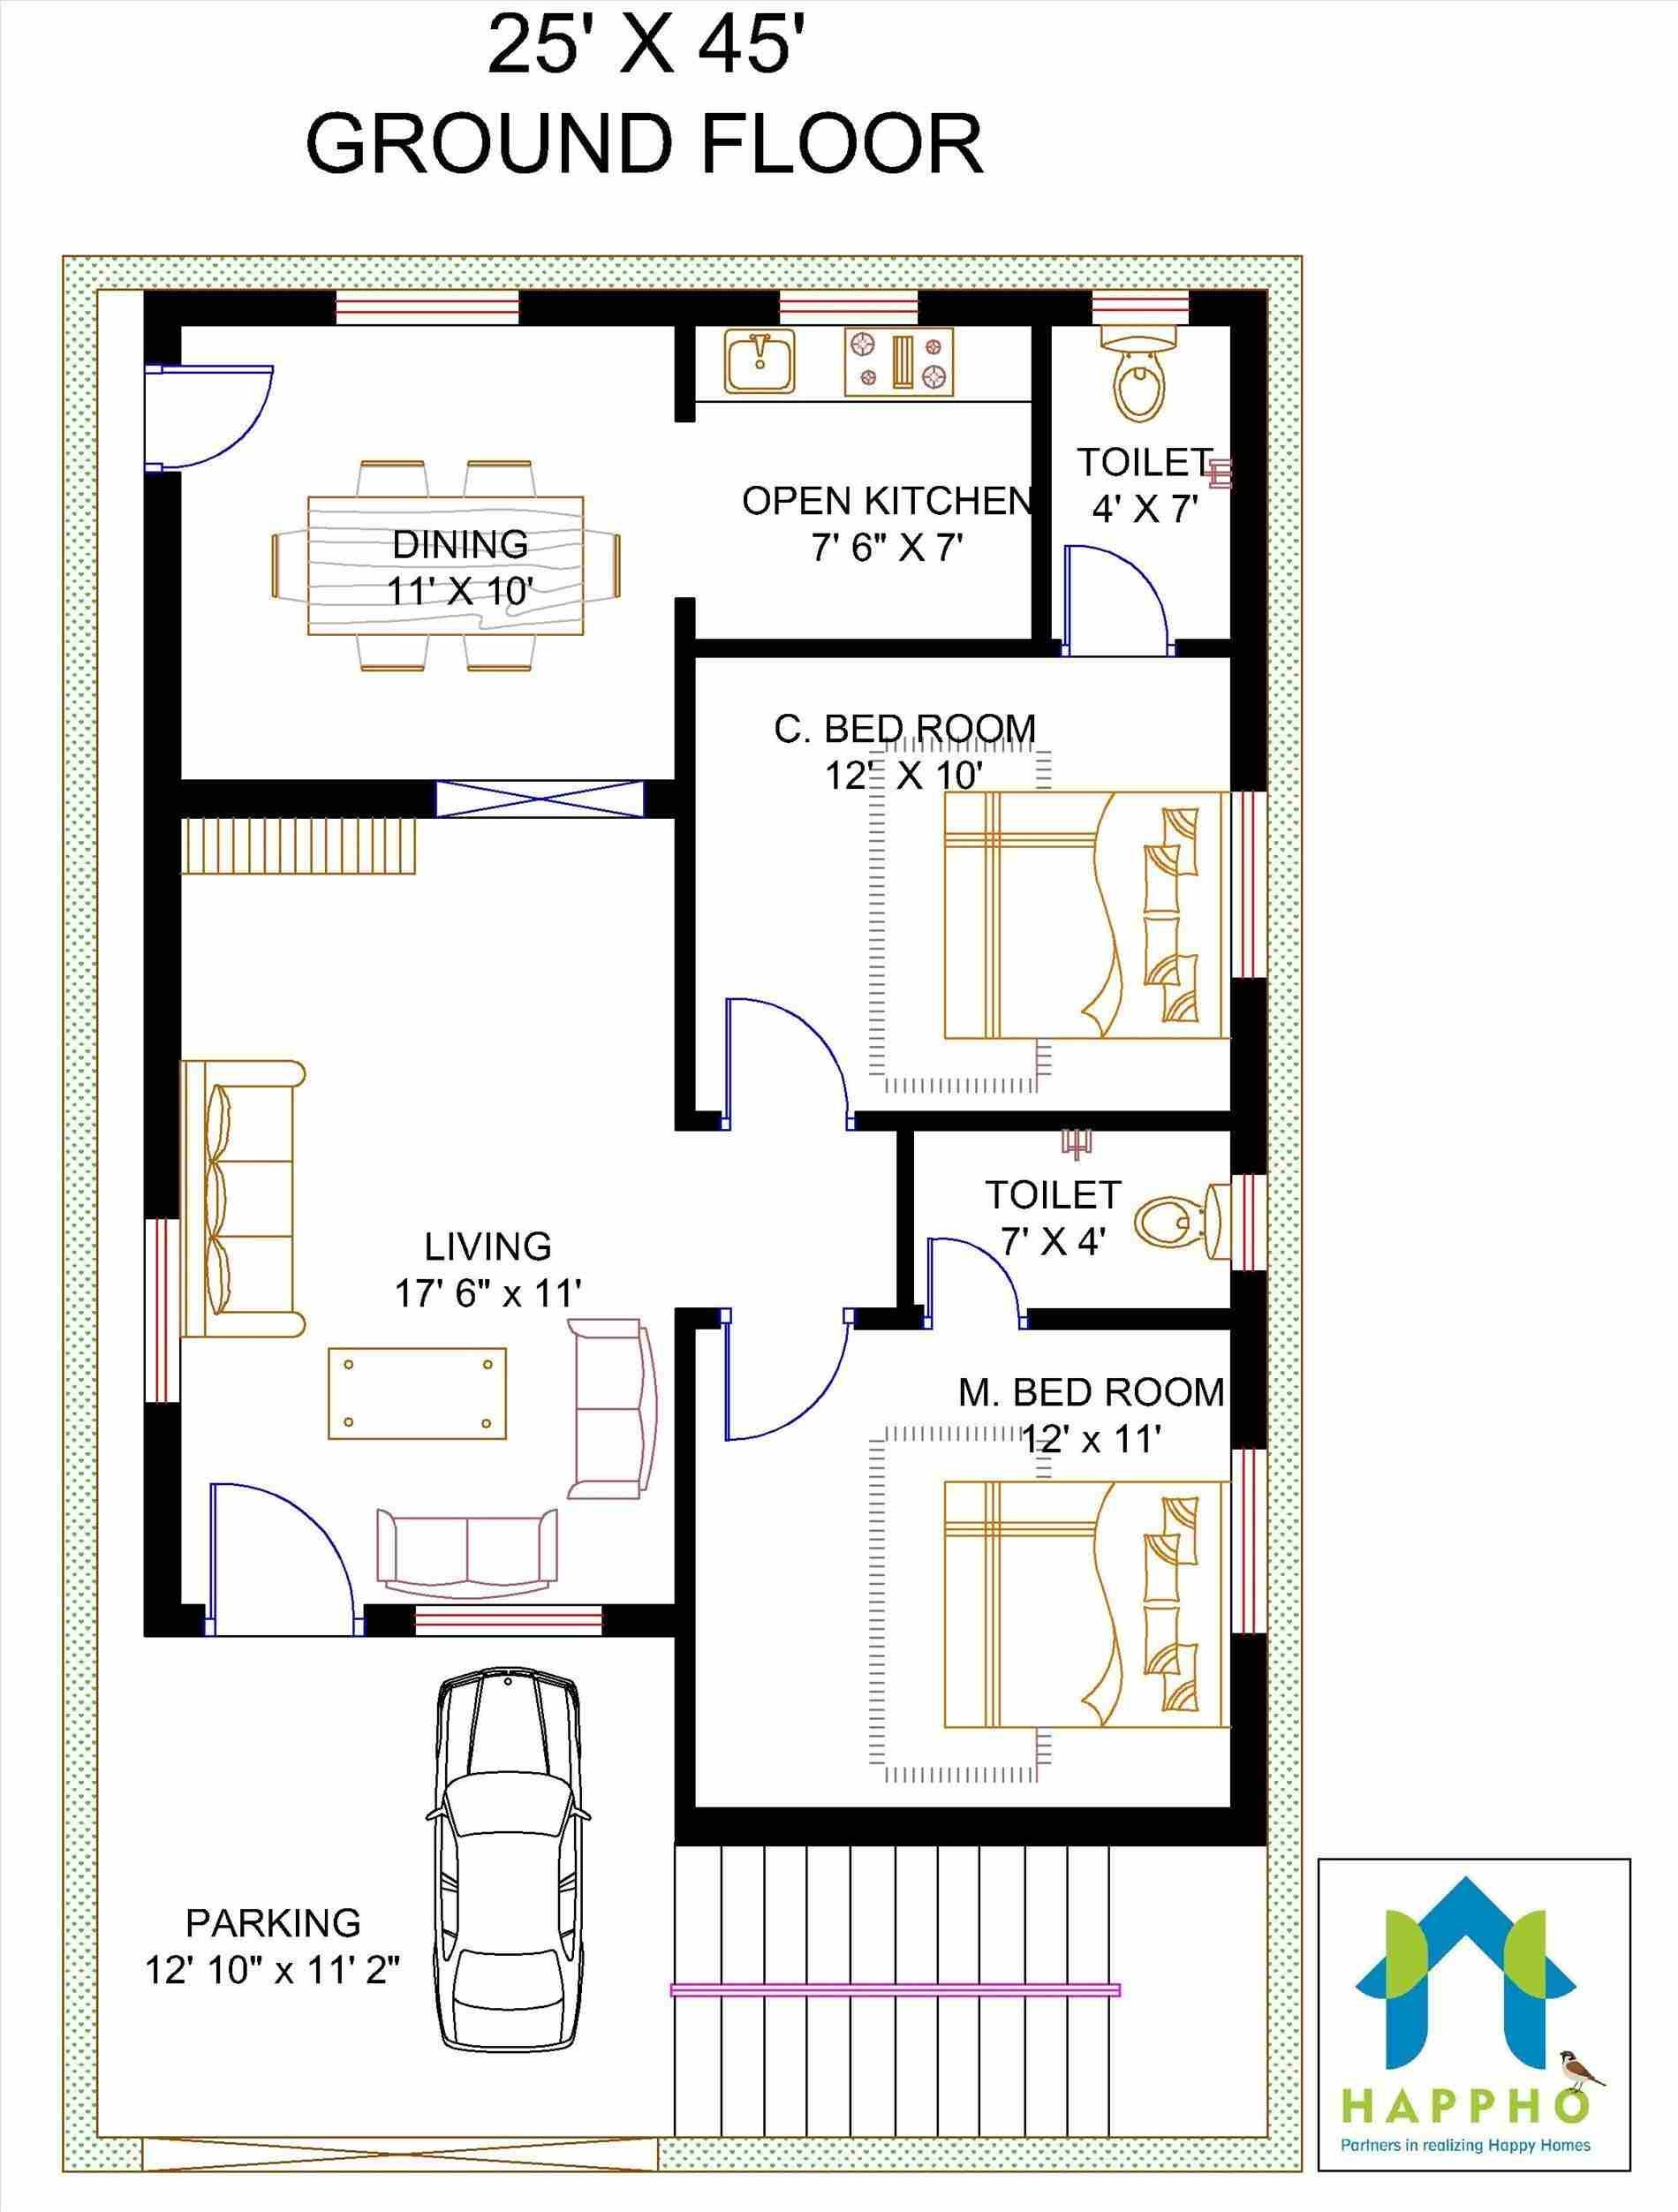 2 Bedroom House Plans Indian Style